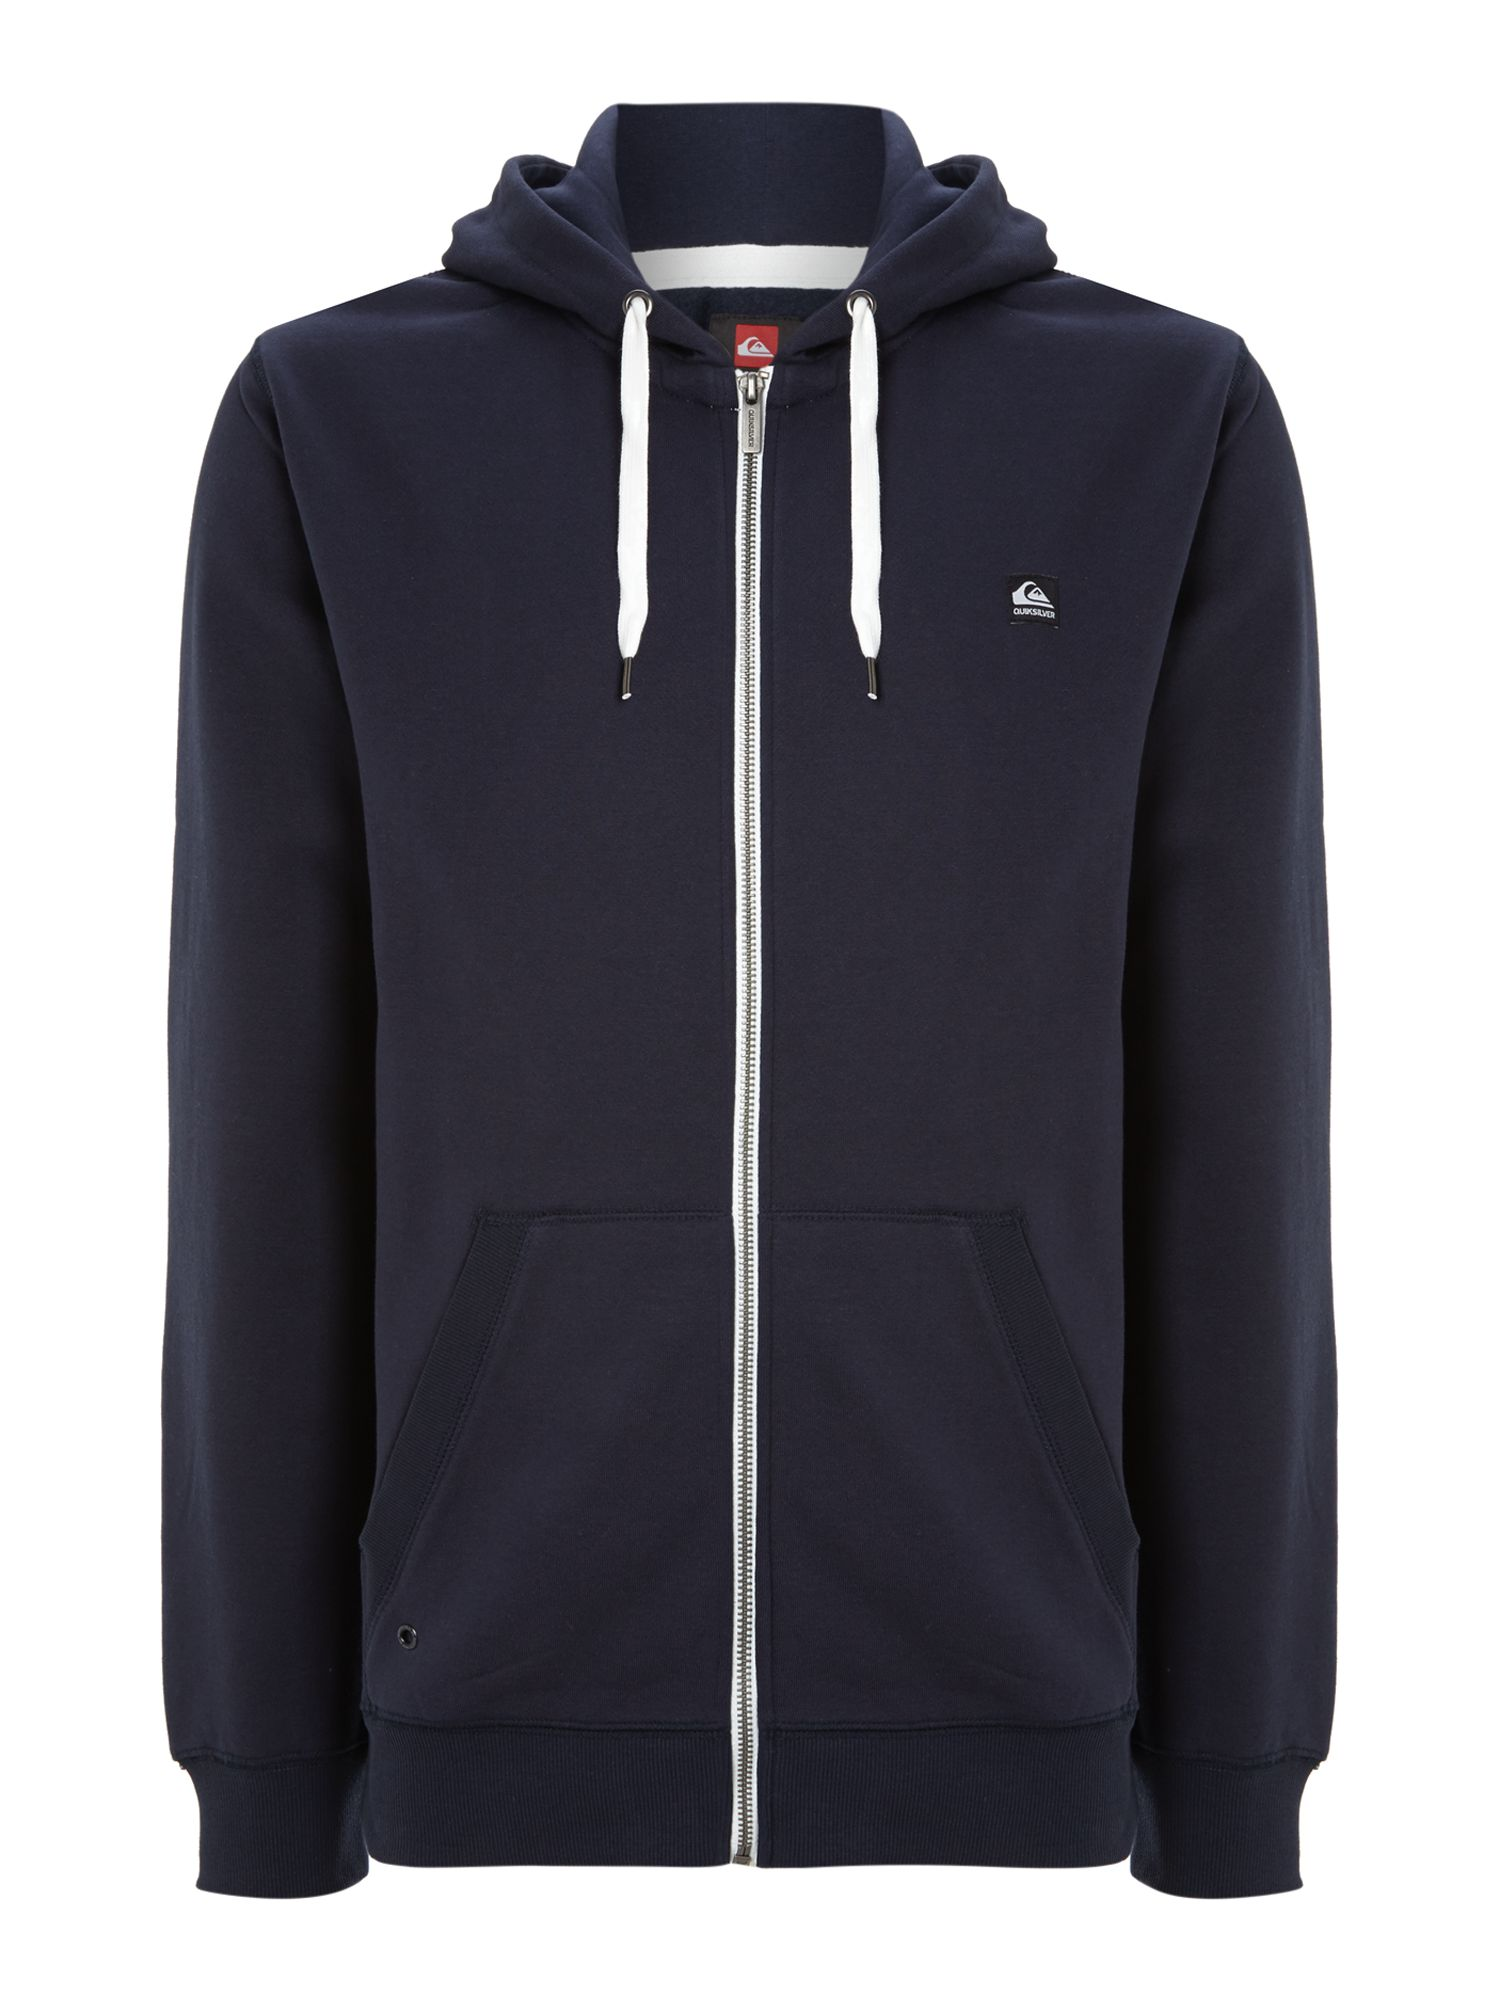 Major basic hoodie